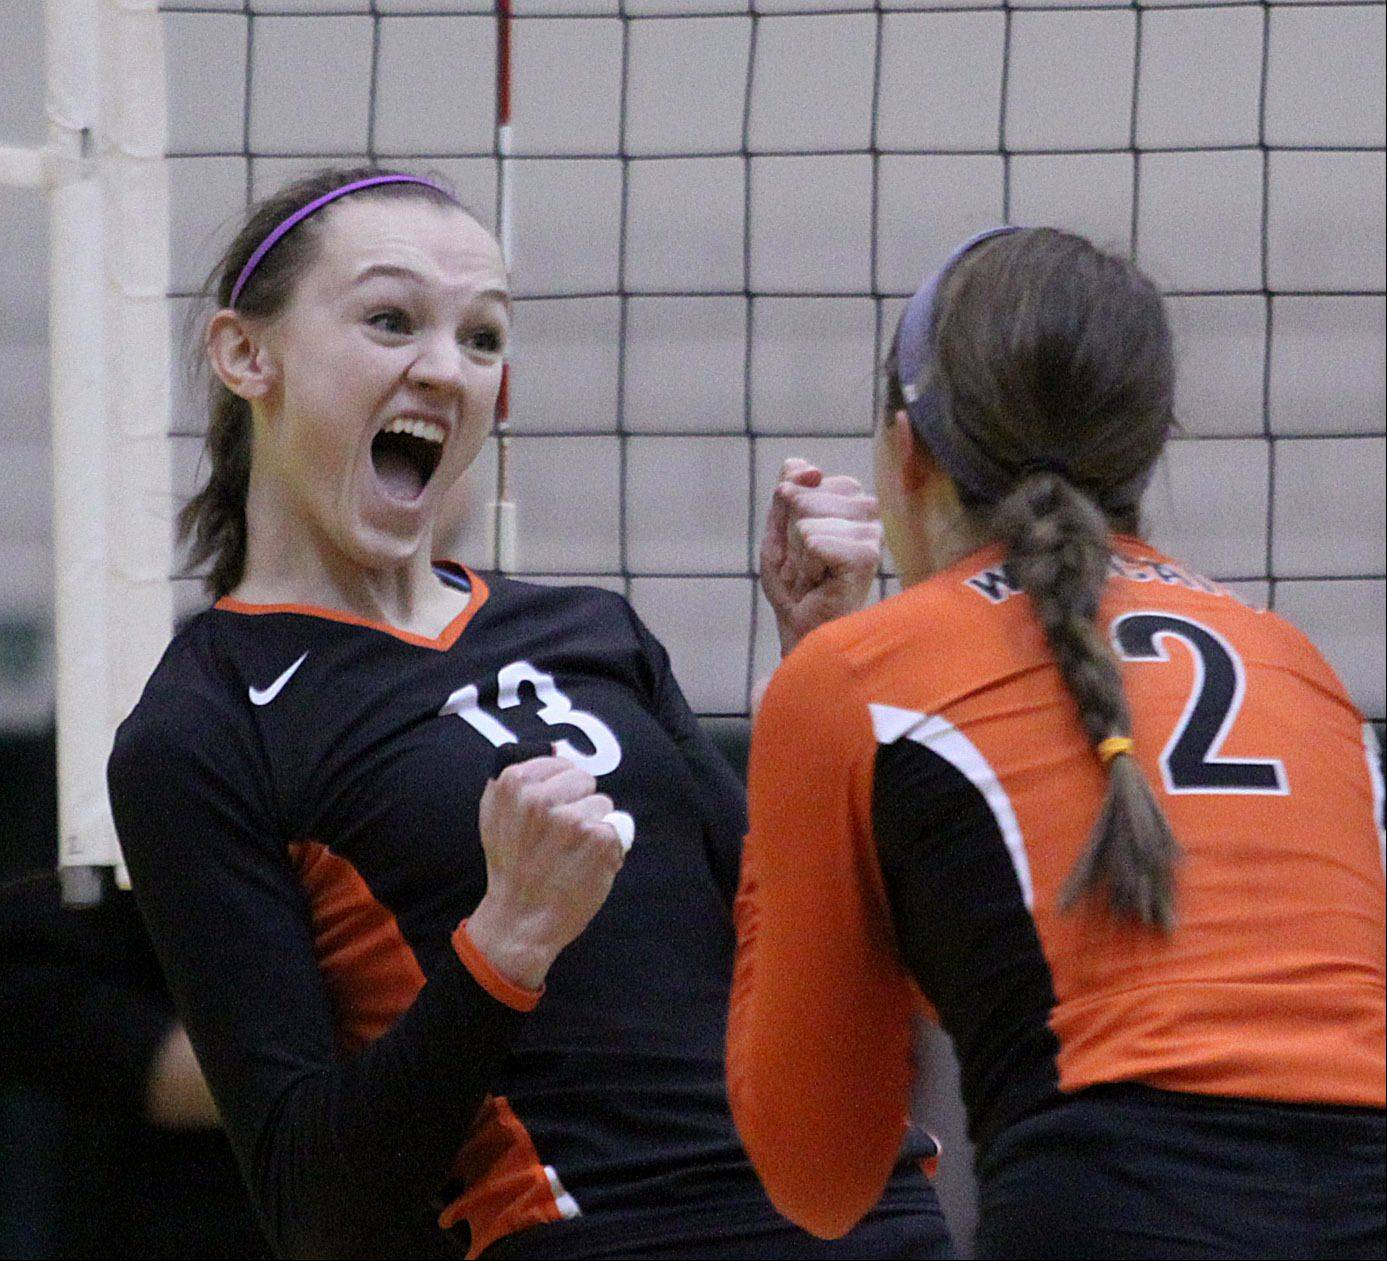 Libertyville's Julia Smagacz, left, celebrates with Kristen Webb during a sectional final win over Palatine at Fremd on Thursday night.